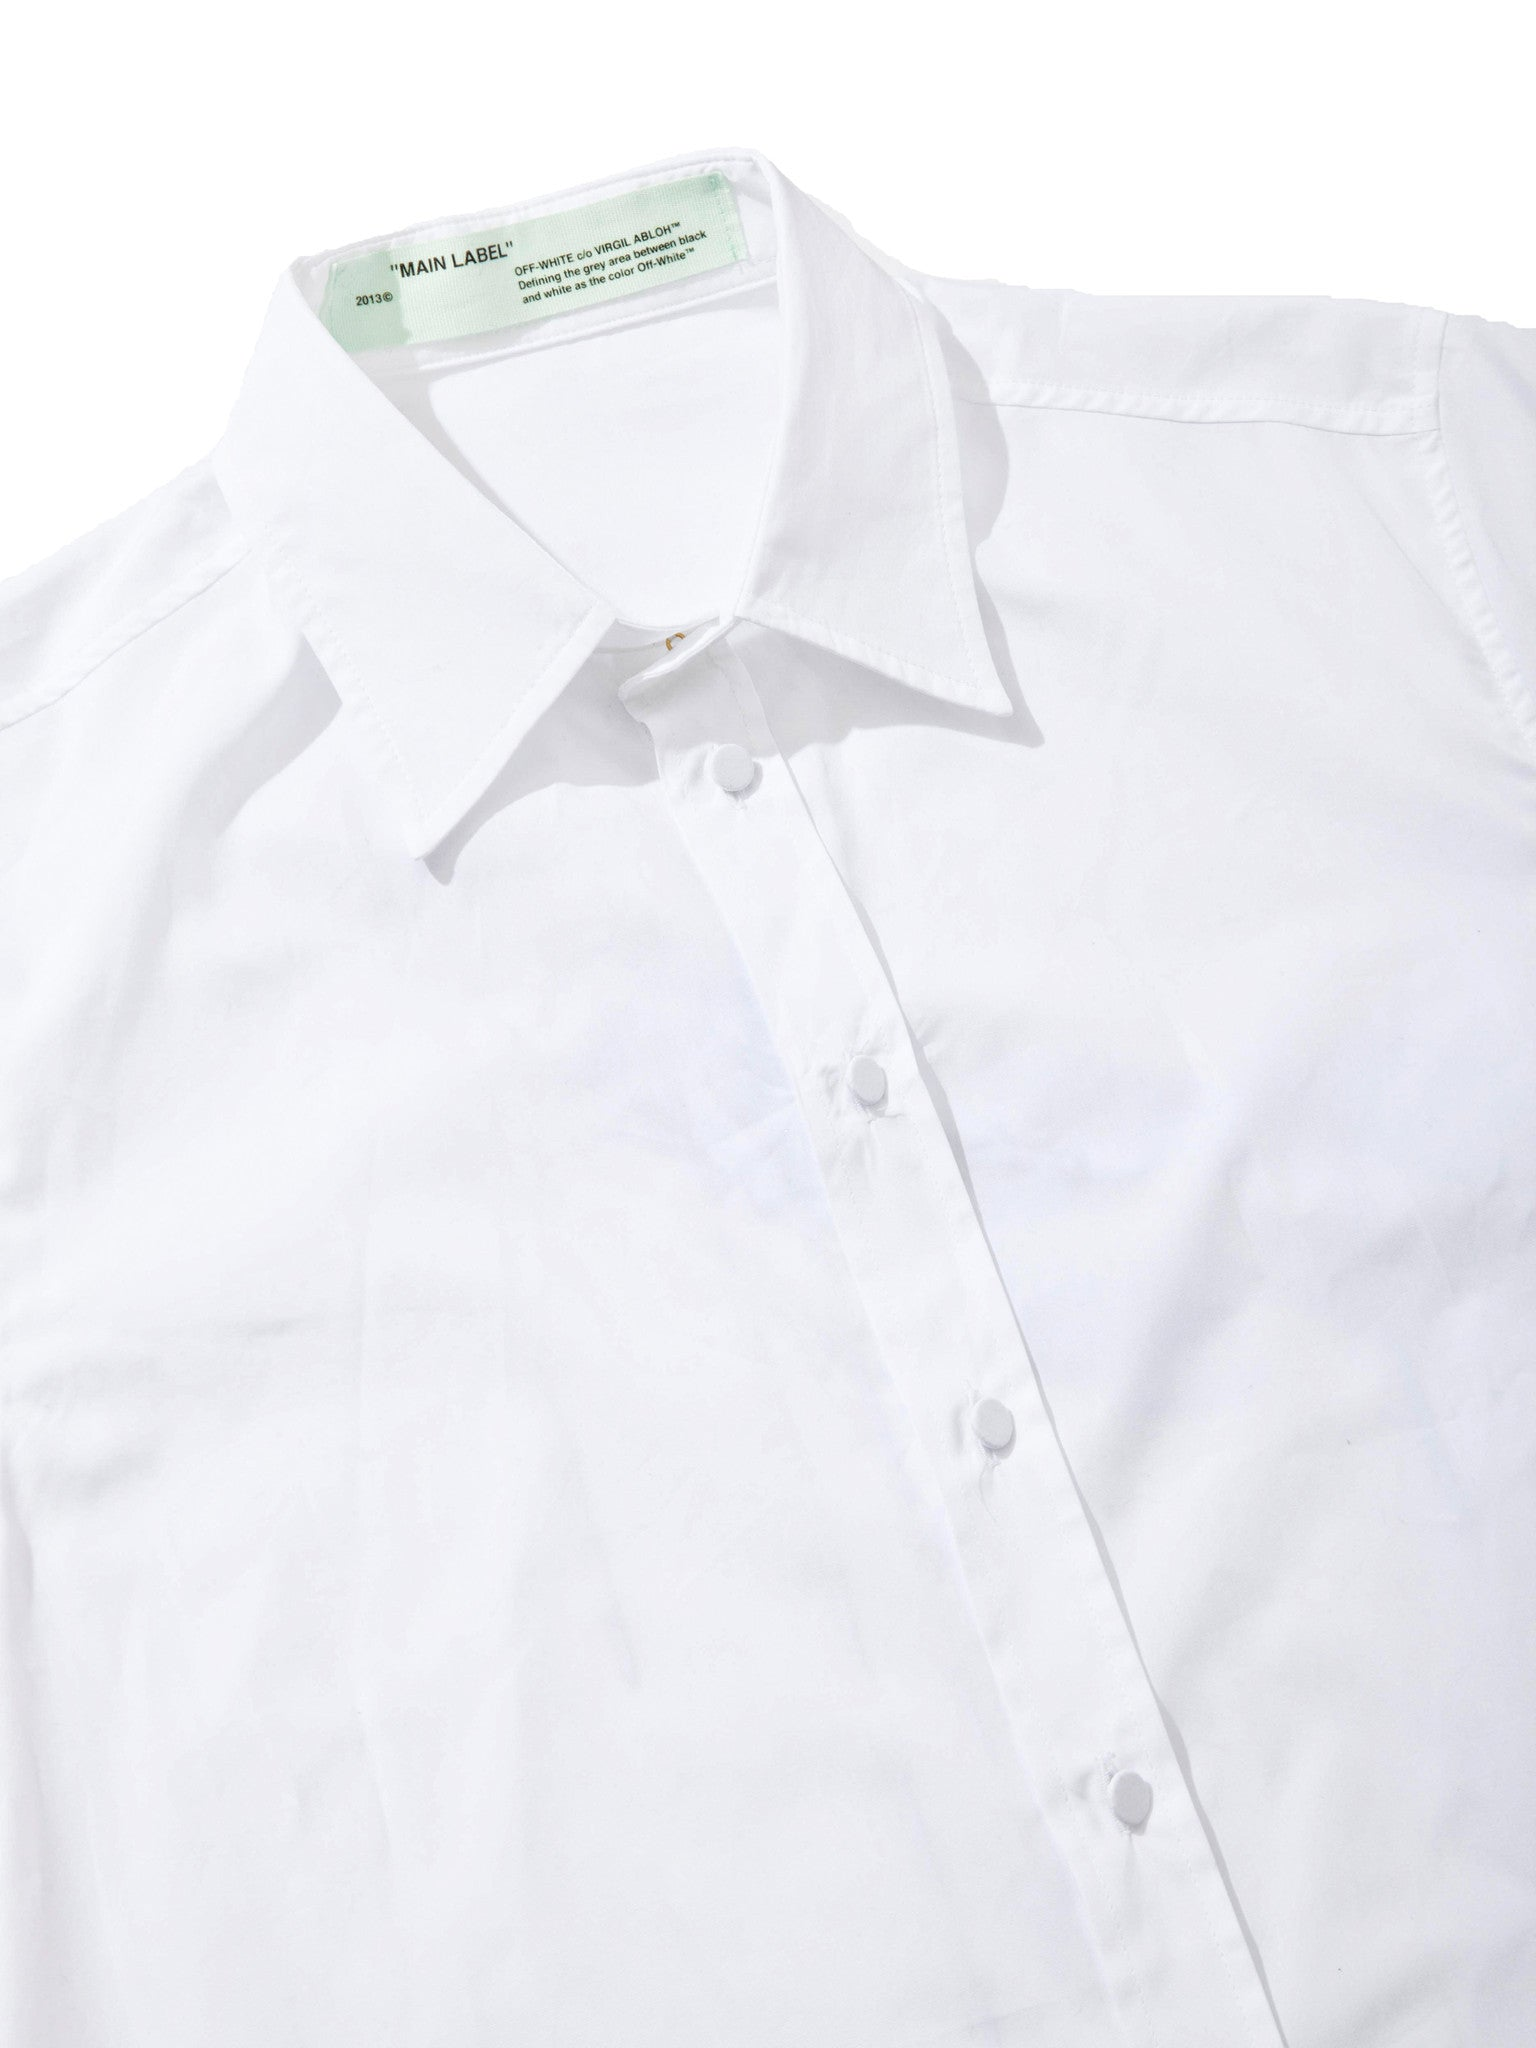 OTHELO Dress Shirt SS